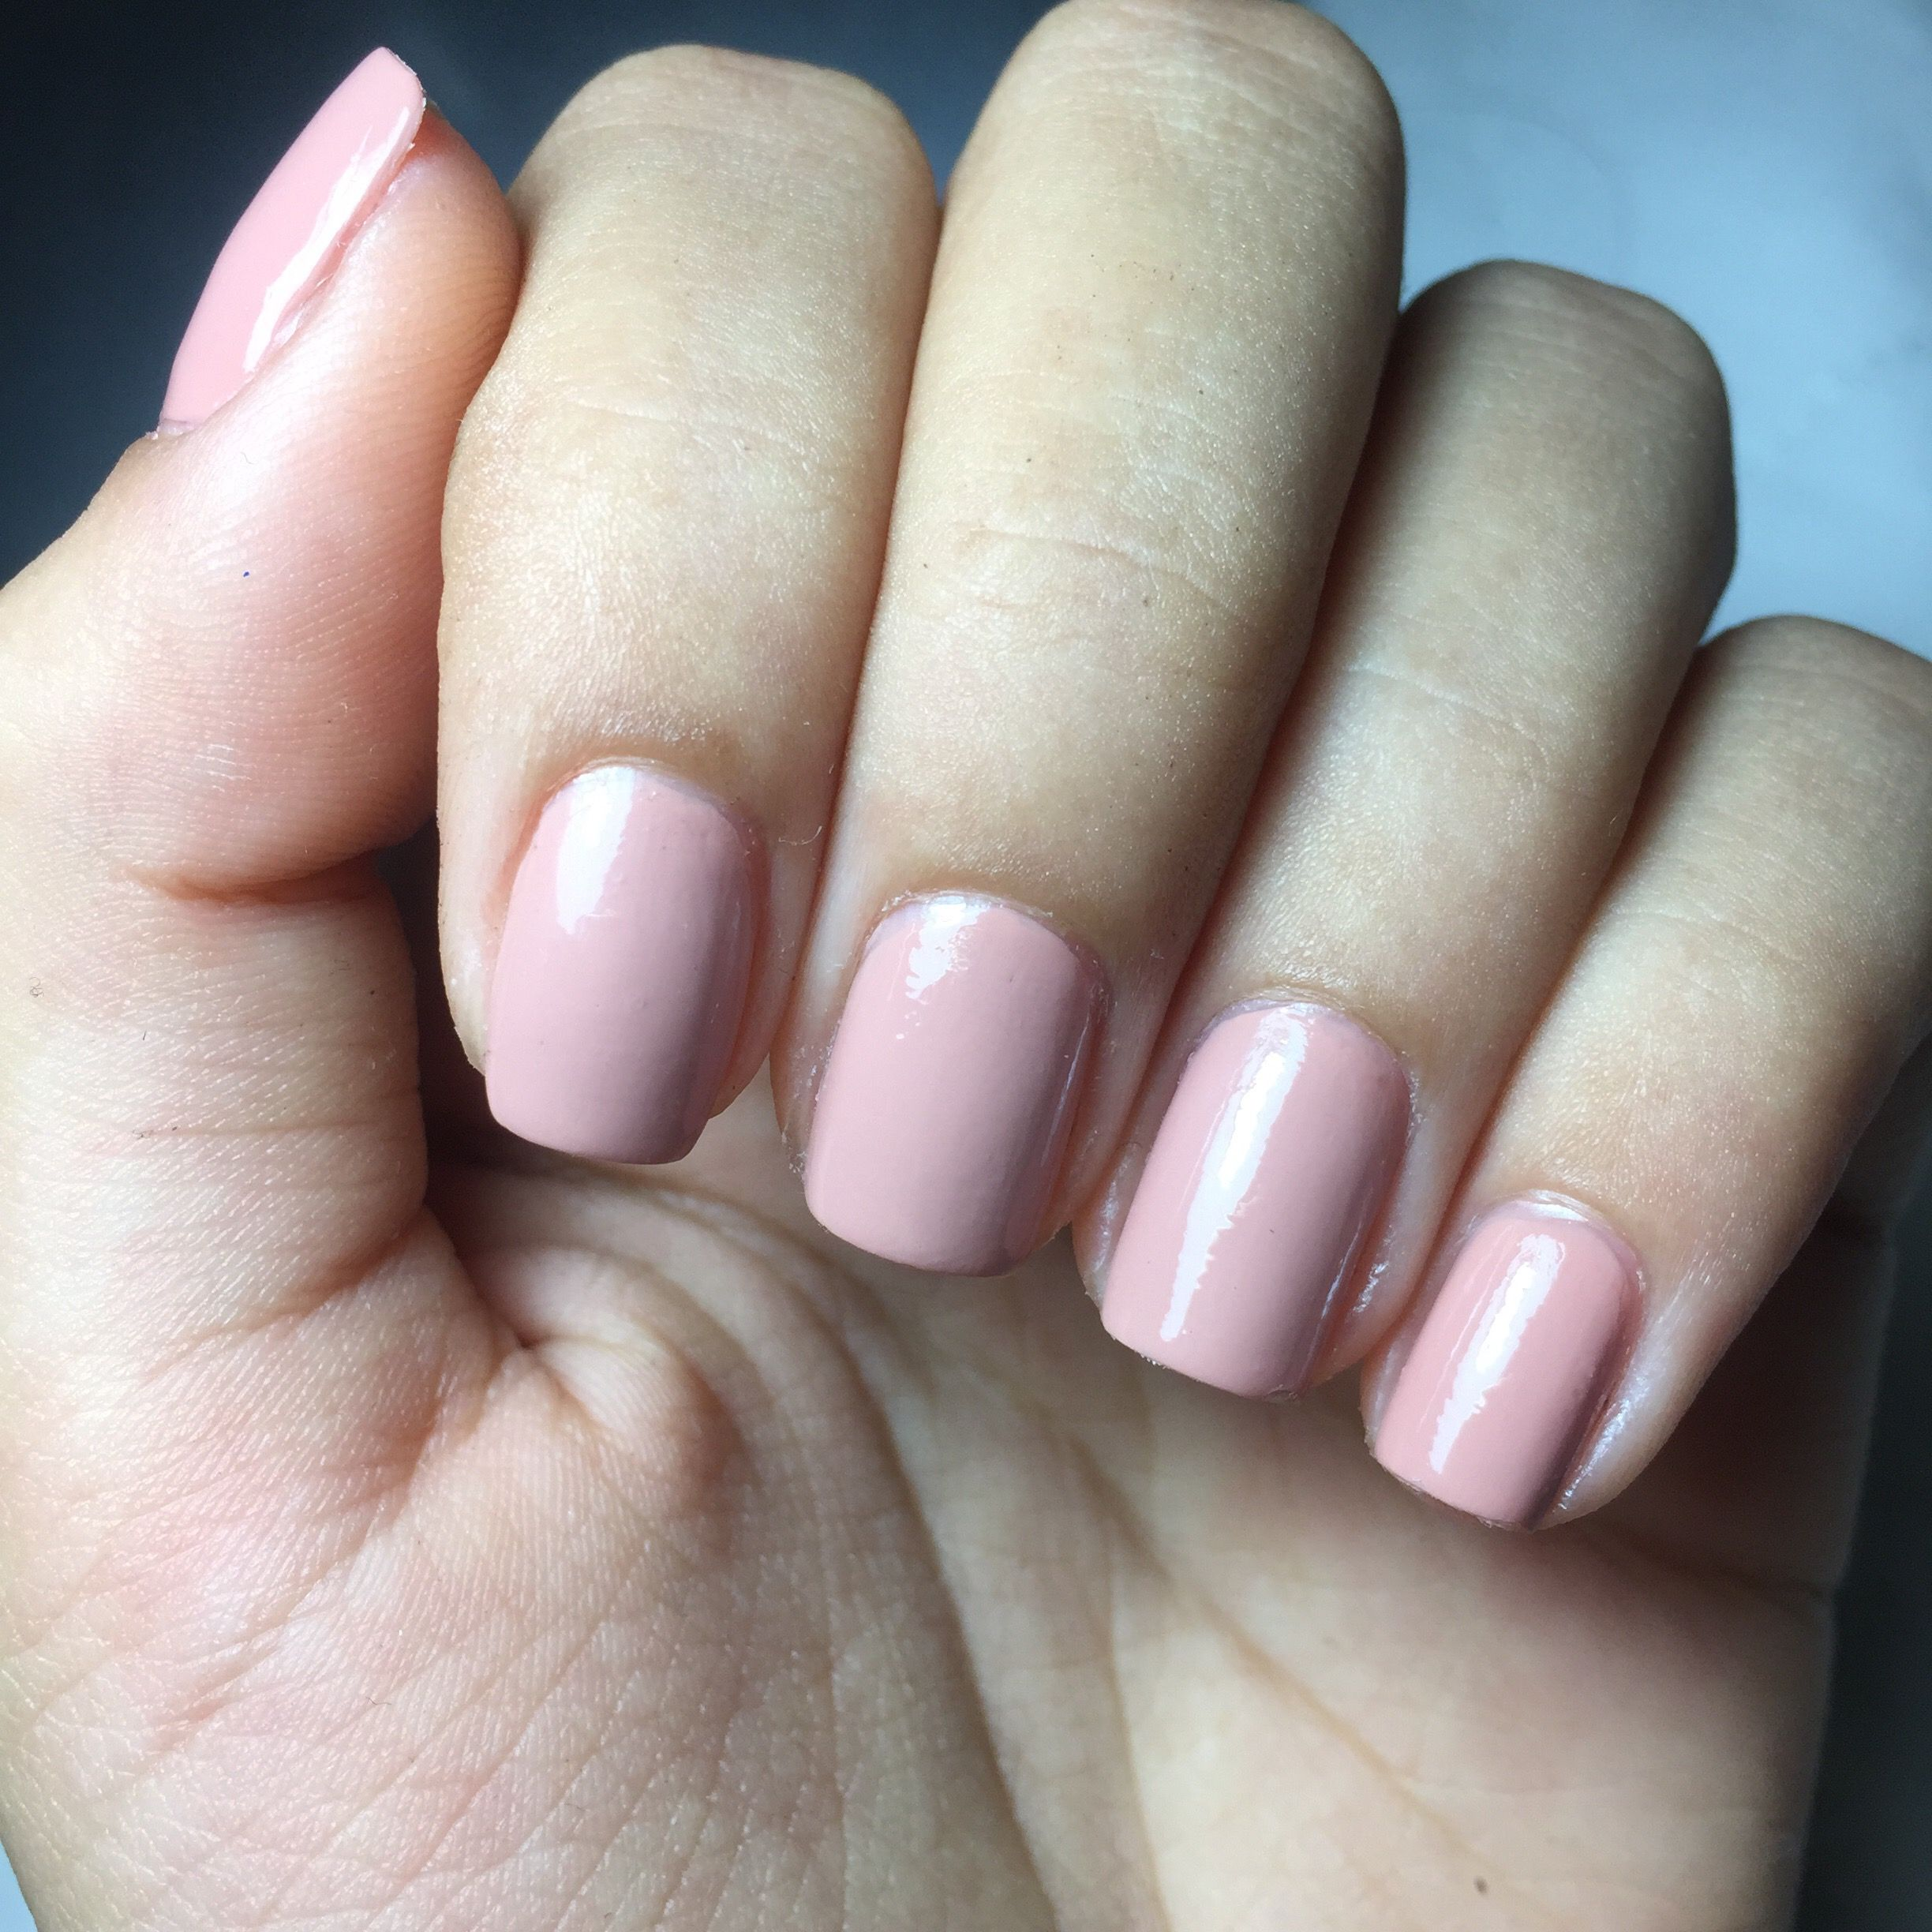 Pretty nude nails with: Masglo (Diva) | Nails | Pinterest | Nude nails